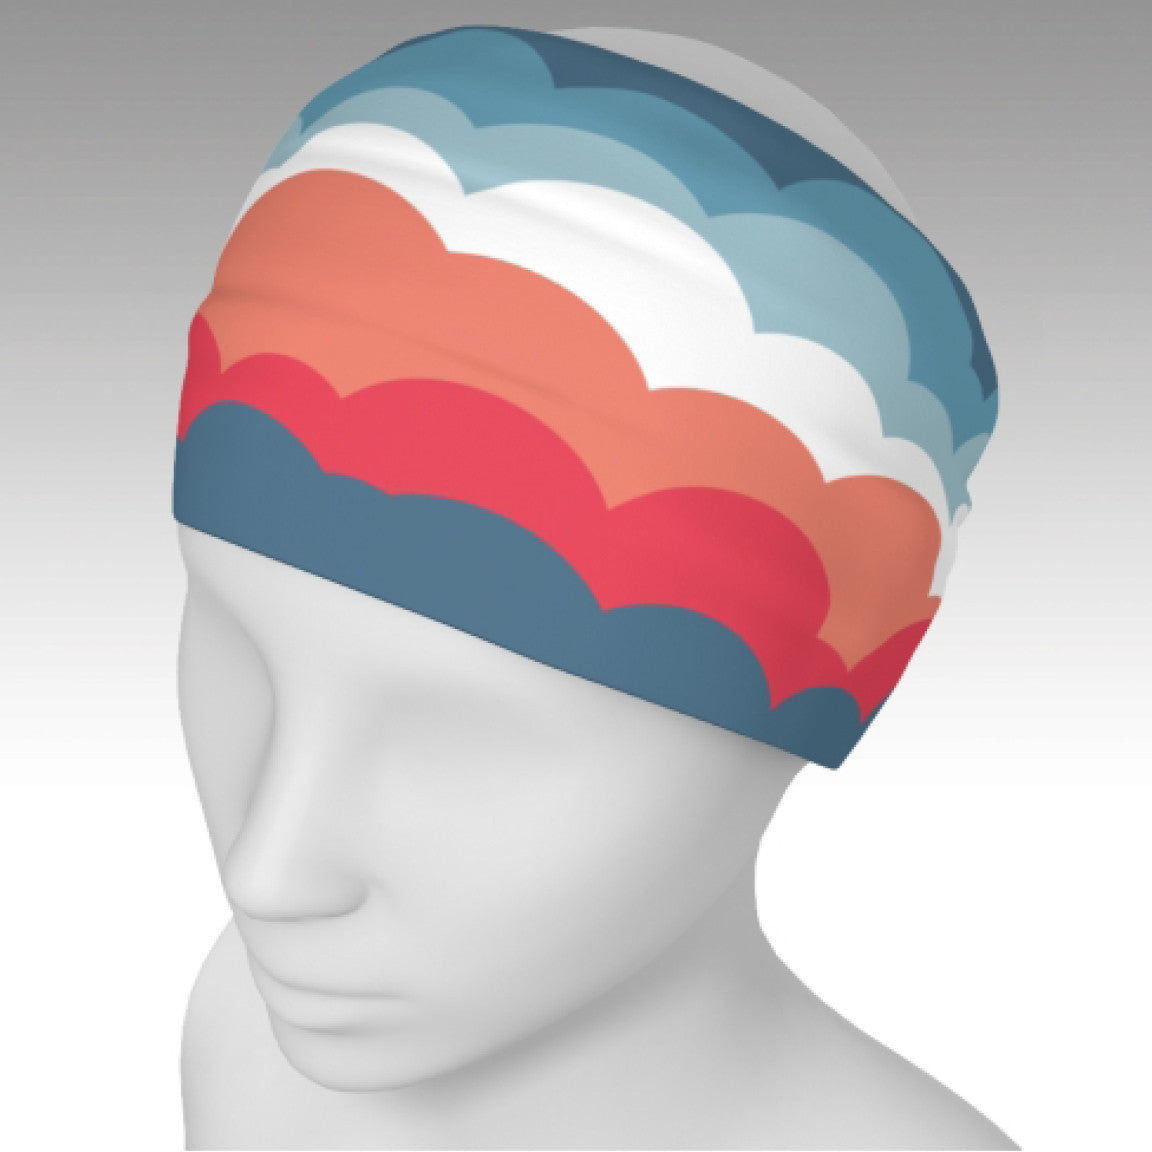 Headband with fun One Plane Jane cloud design. Coral, orange, blue, white. Full wrap around head and can be used as a scarf.  Perfect for travel, flying, pre-flight or dress up a t-shirt